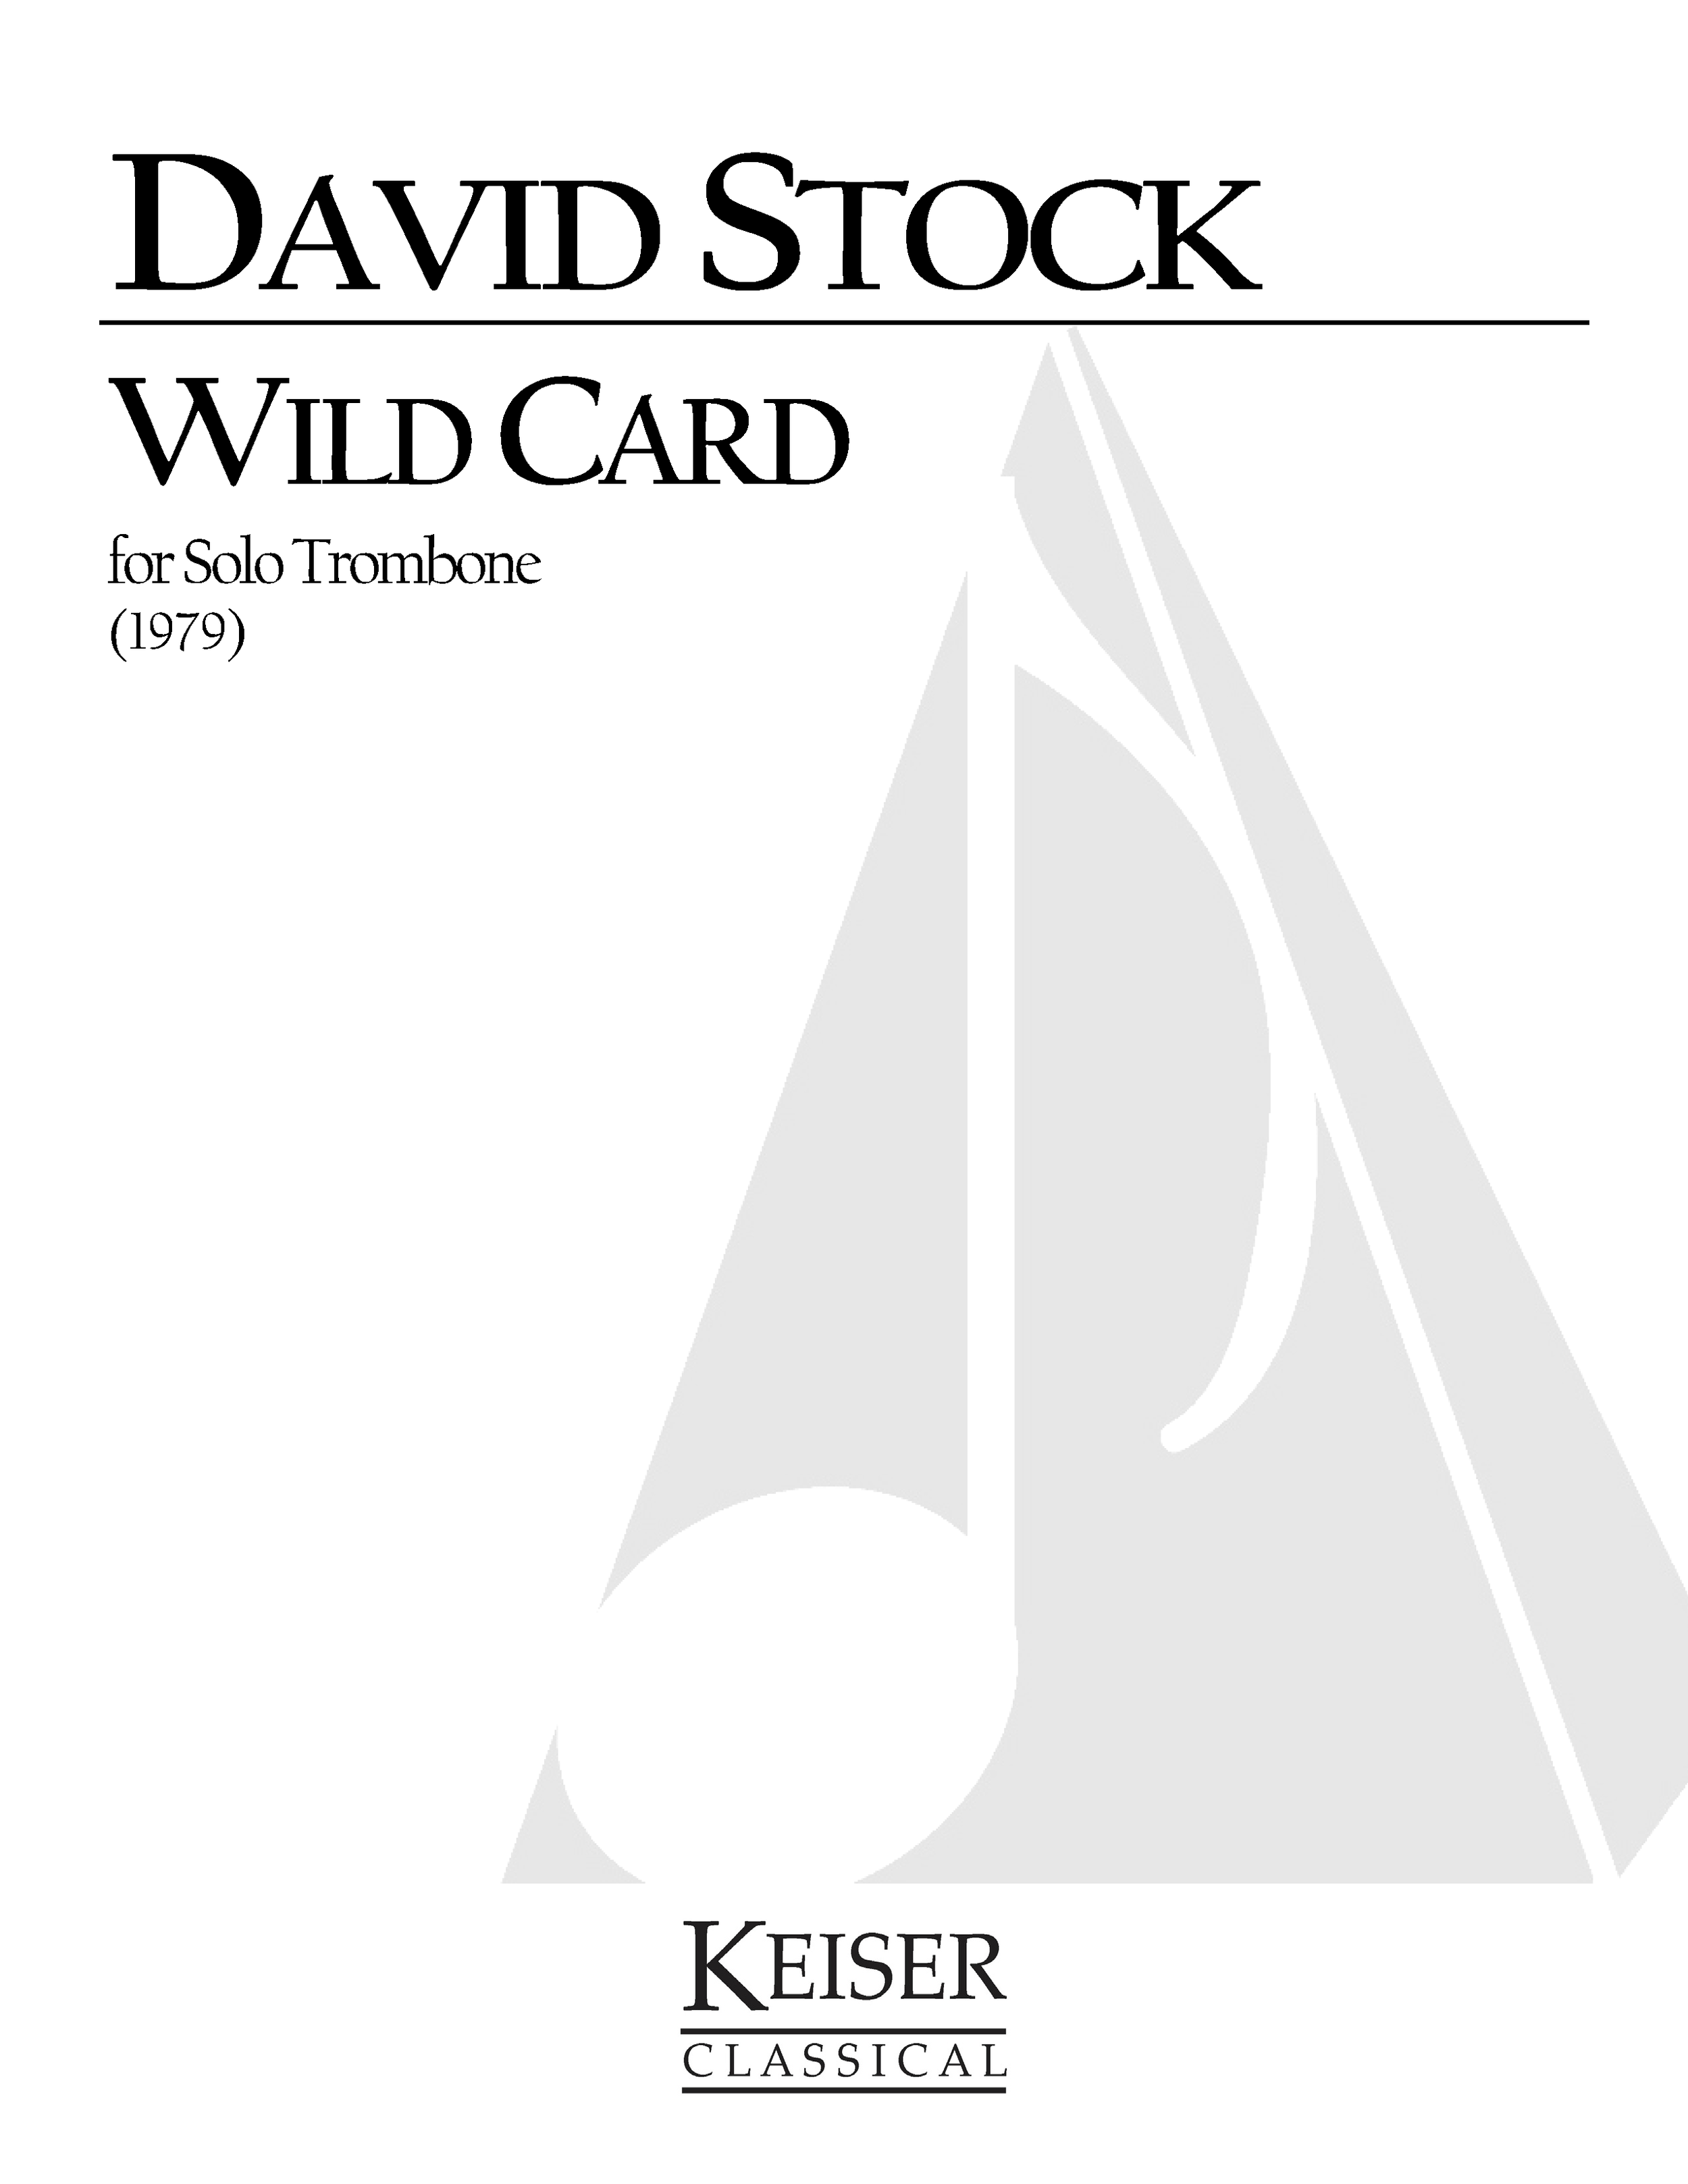 Wild Card (1979)  - Solo TromboneRent/Buy: Keiser Music